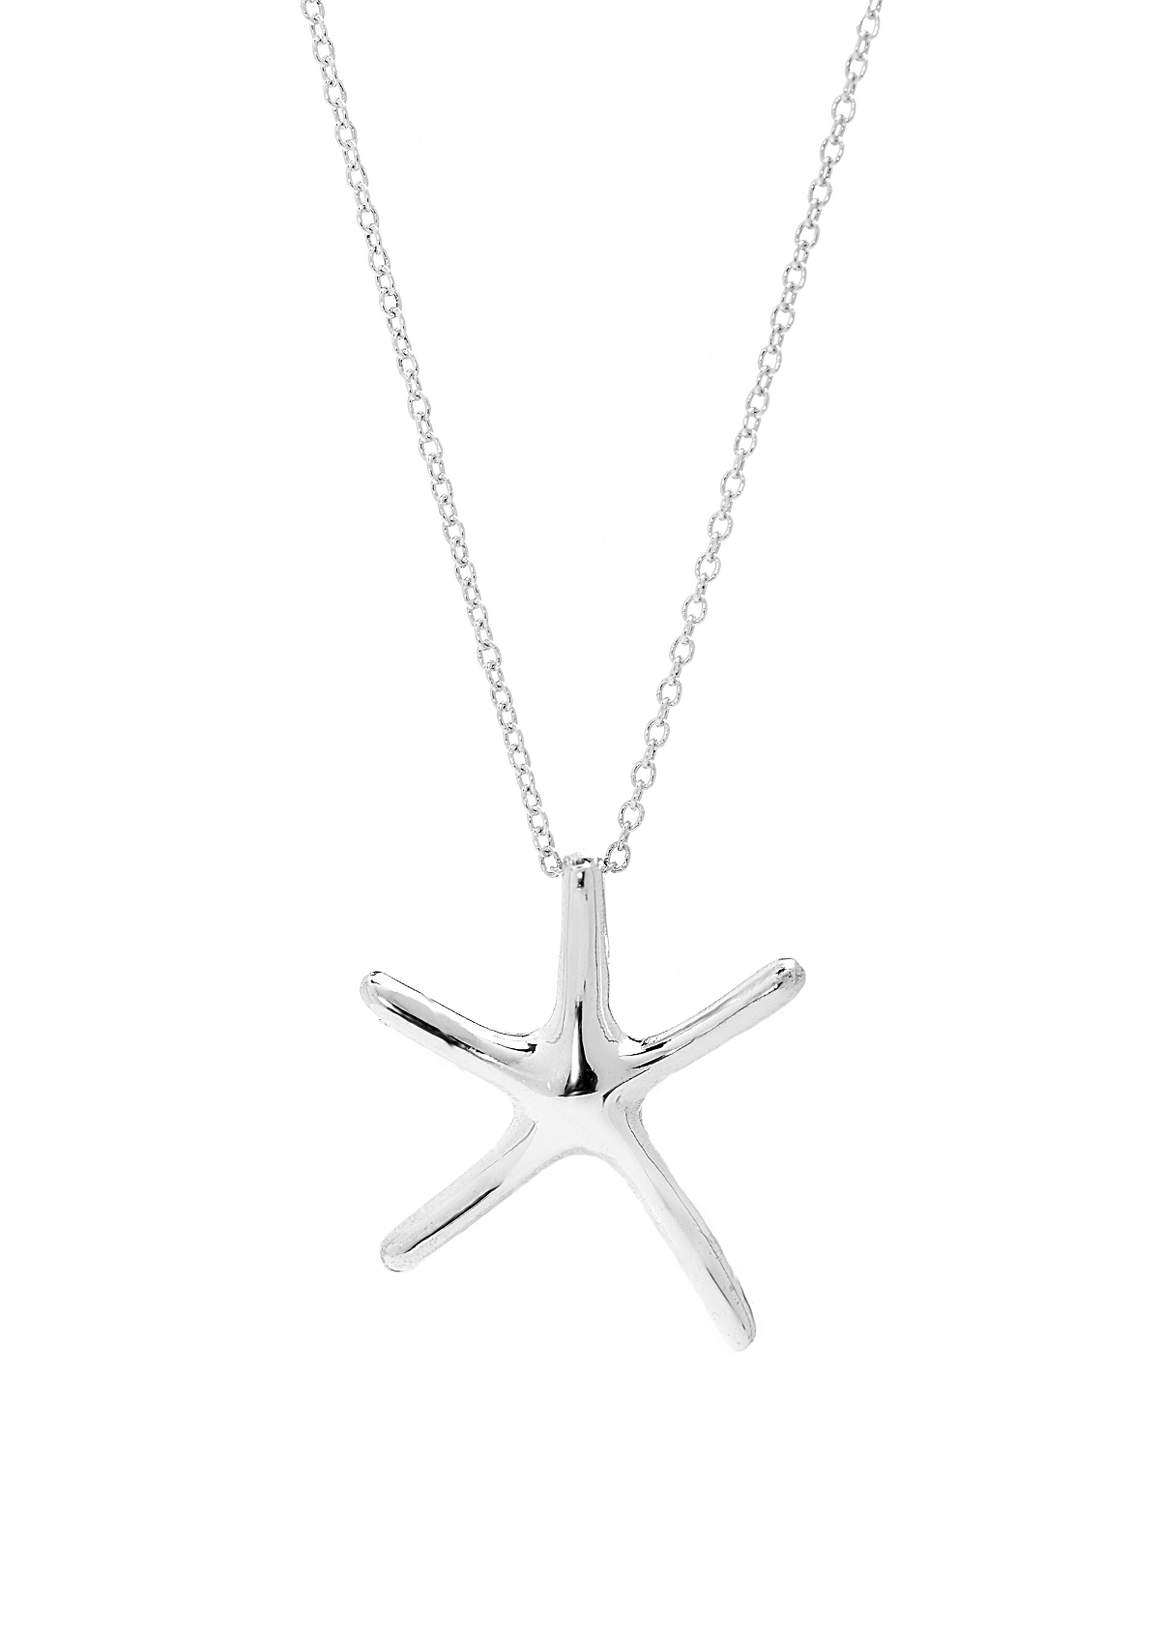 Starfish Pendant Necklace in Sterling Silver - Anny Gabriella NY